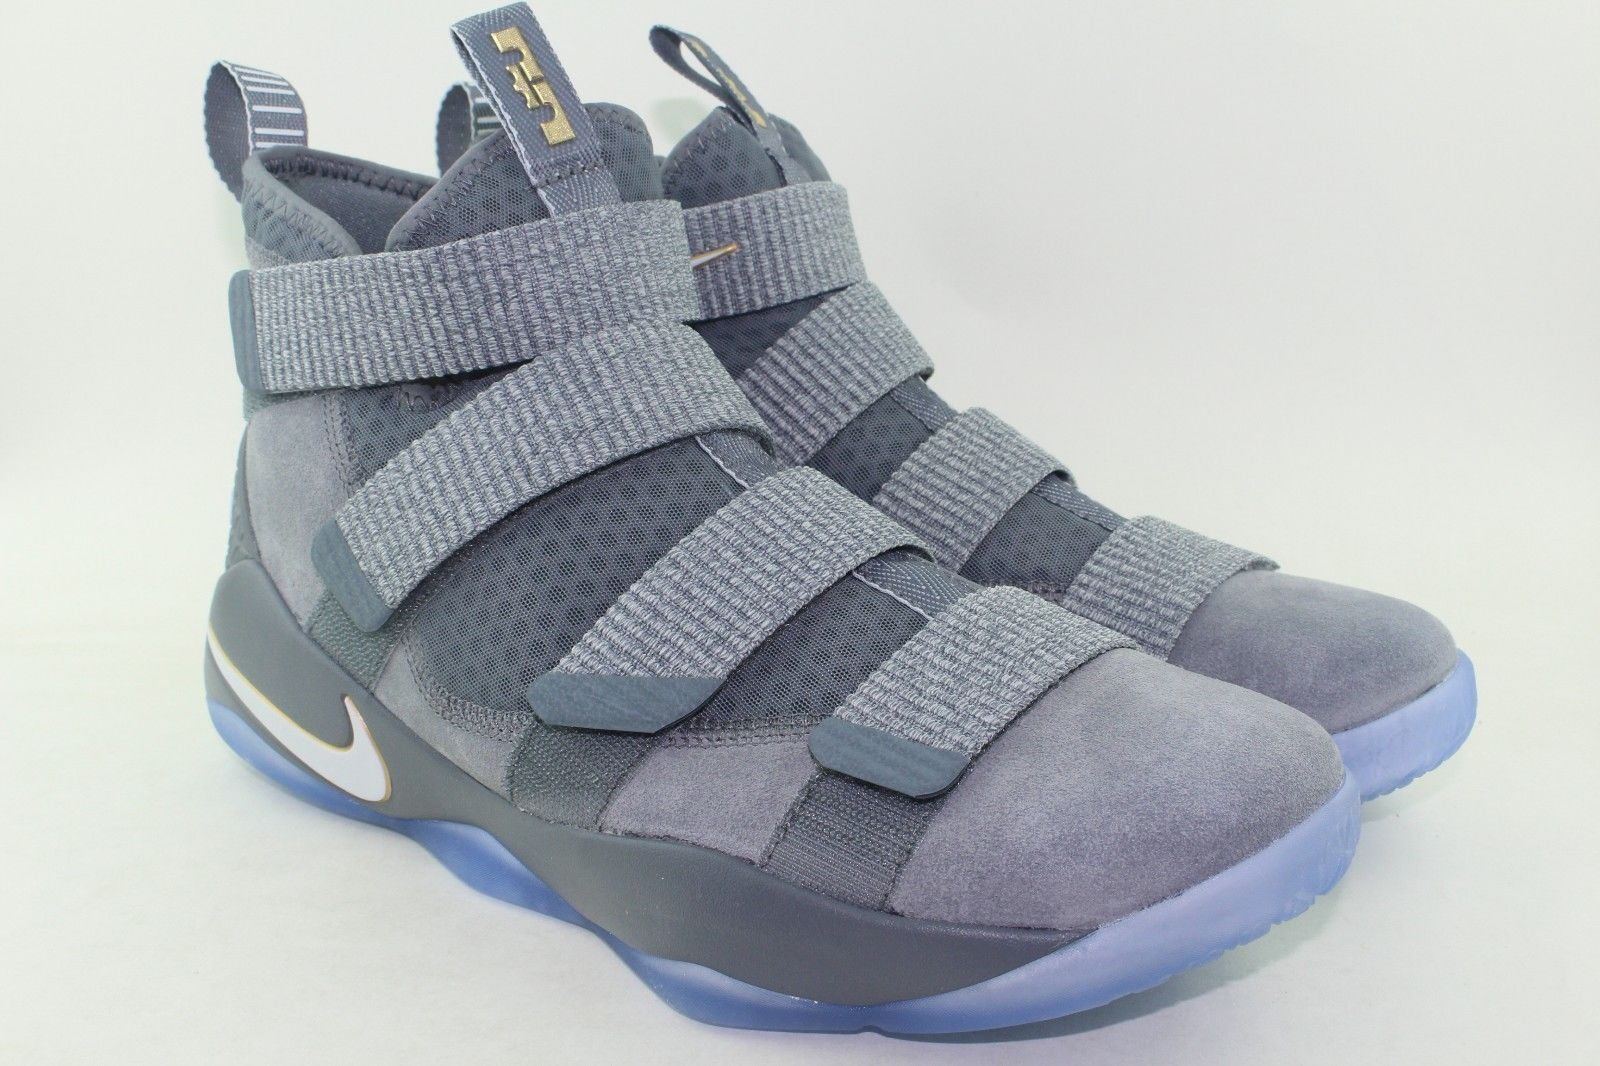 d5f1eb60da02 LEBRON SOLDIER XI 11 MEN SIZE  10.0 COOL GREY NEW RARE PURE PLATINUM  COMFORTABLE